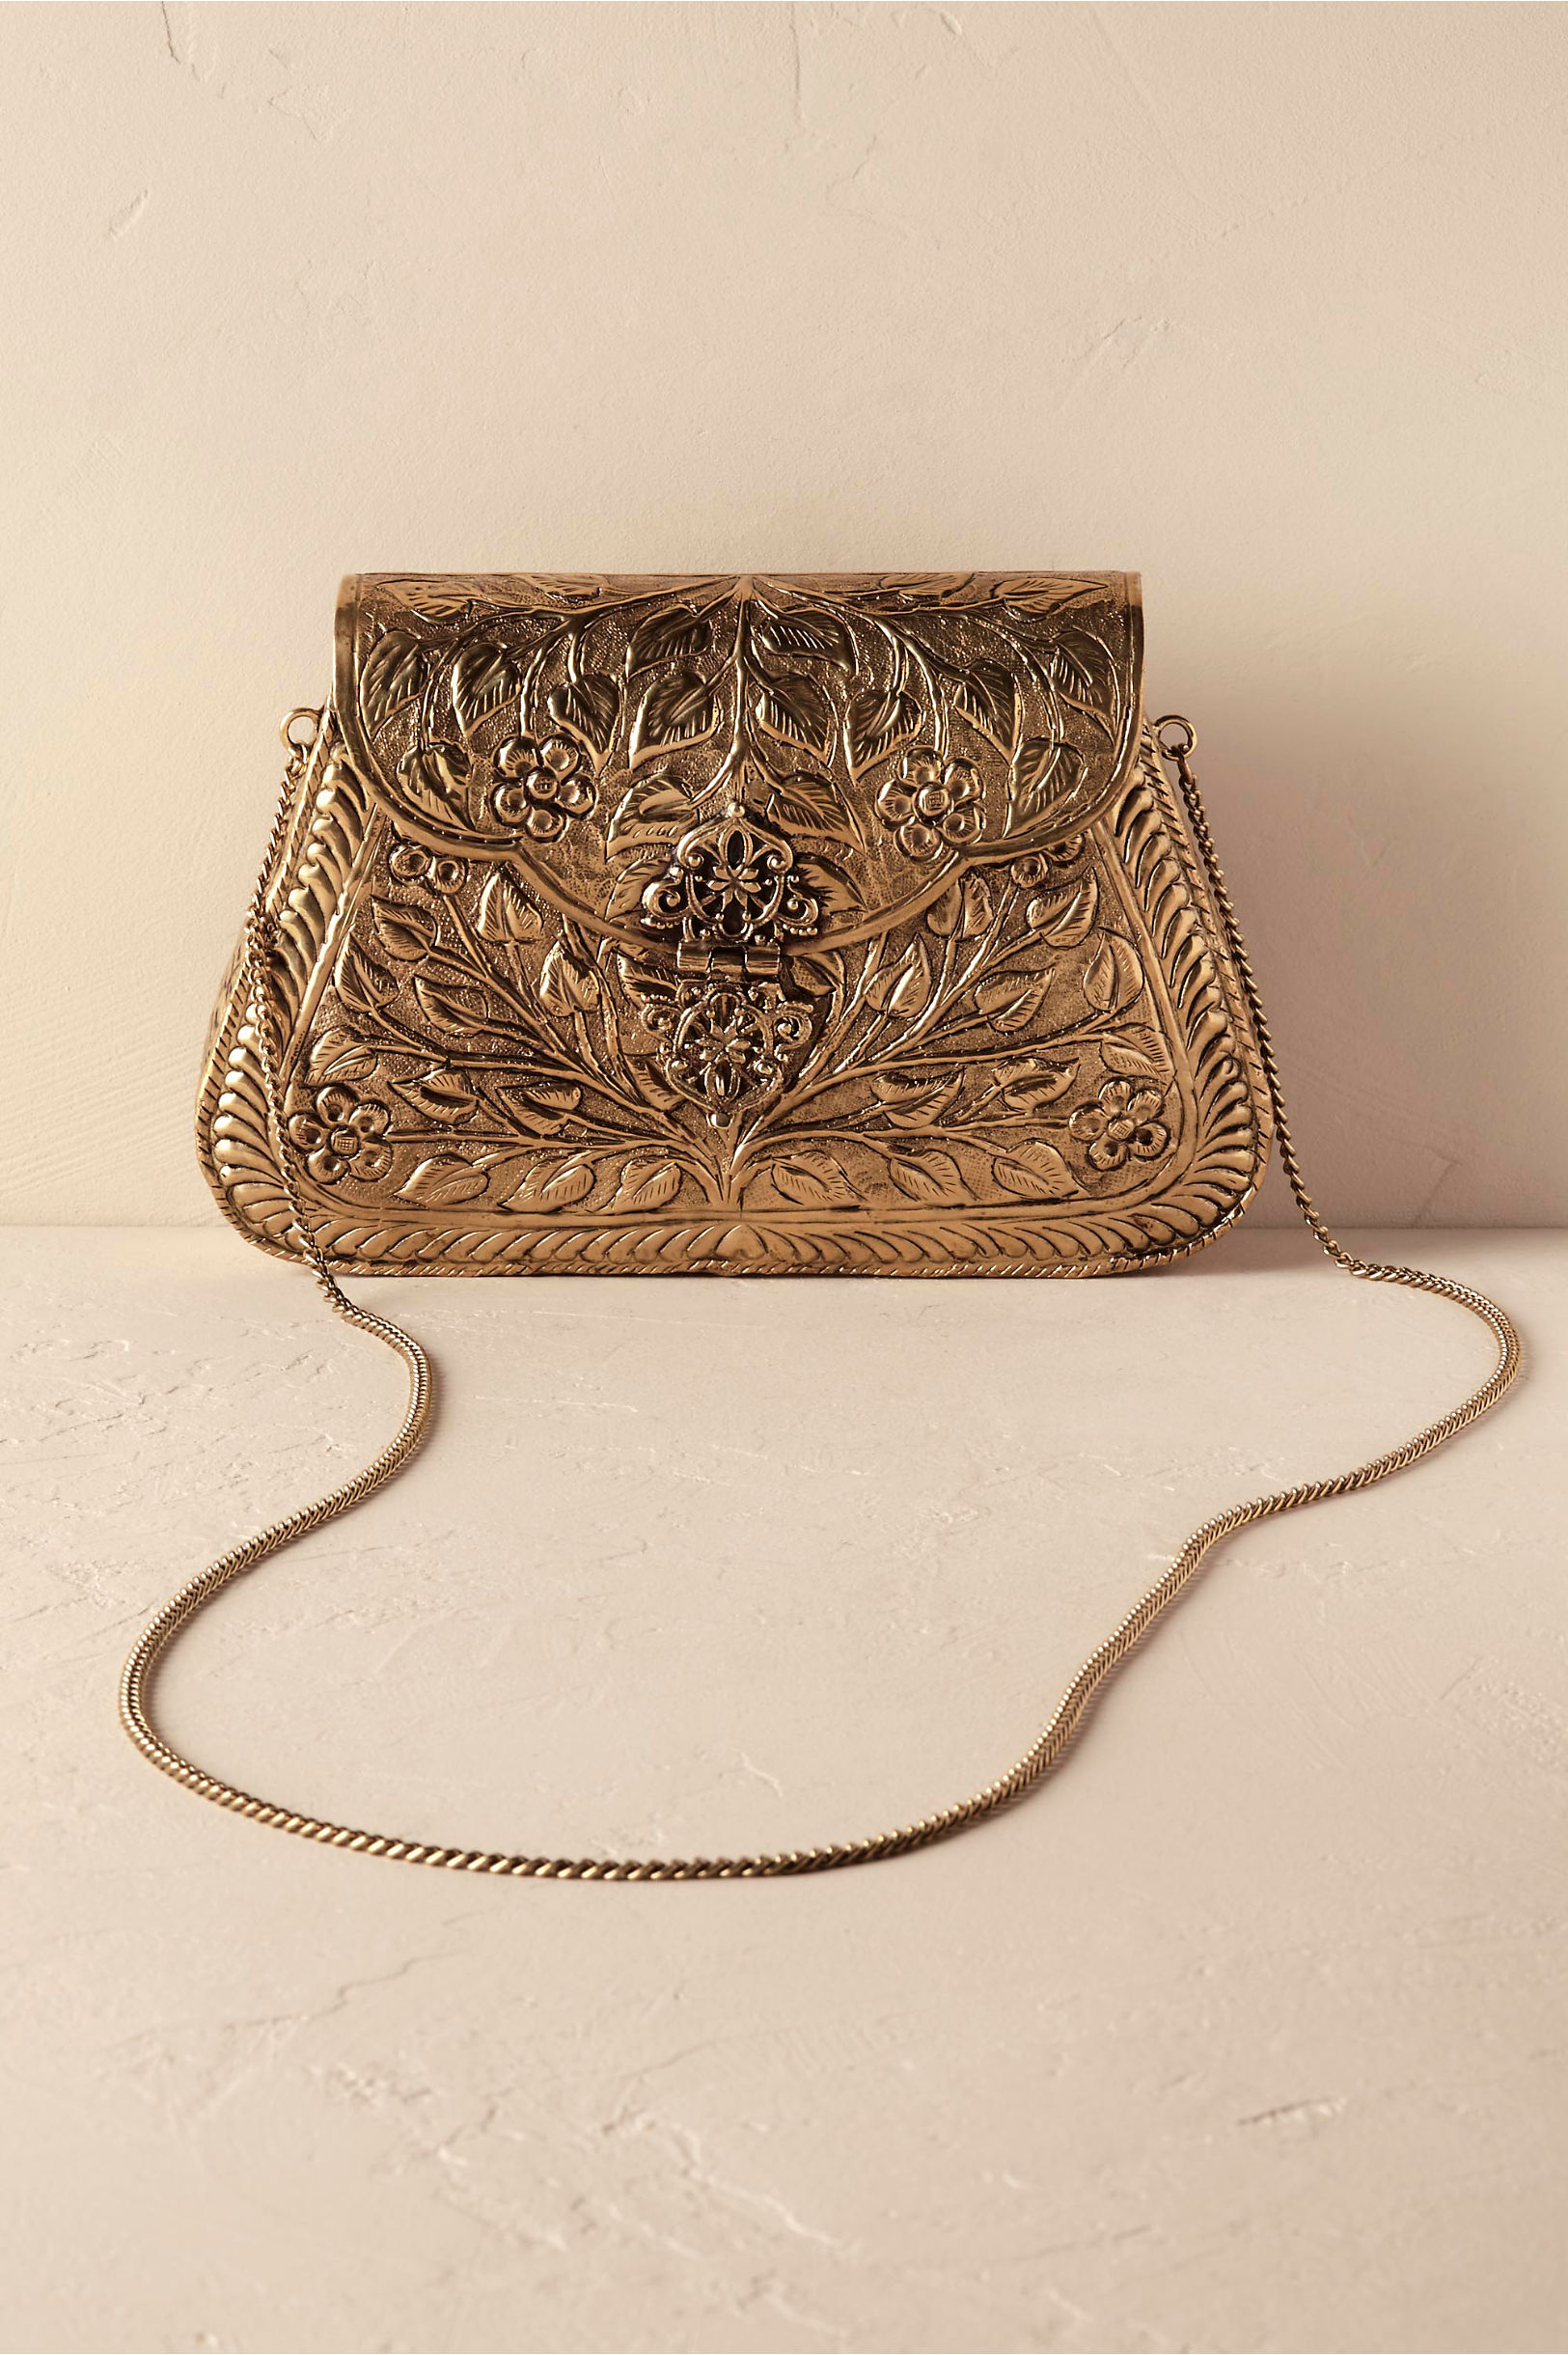 1930s Handbags and Purses Fashion Brienne Clutch $150.00 AT vintagedancer.com